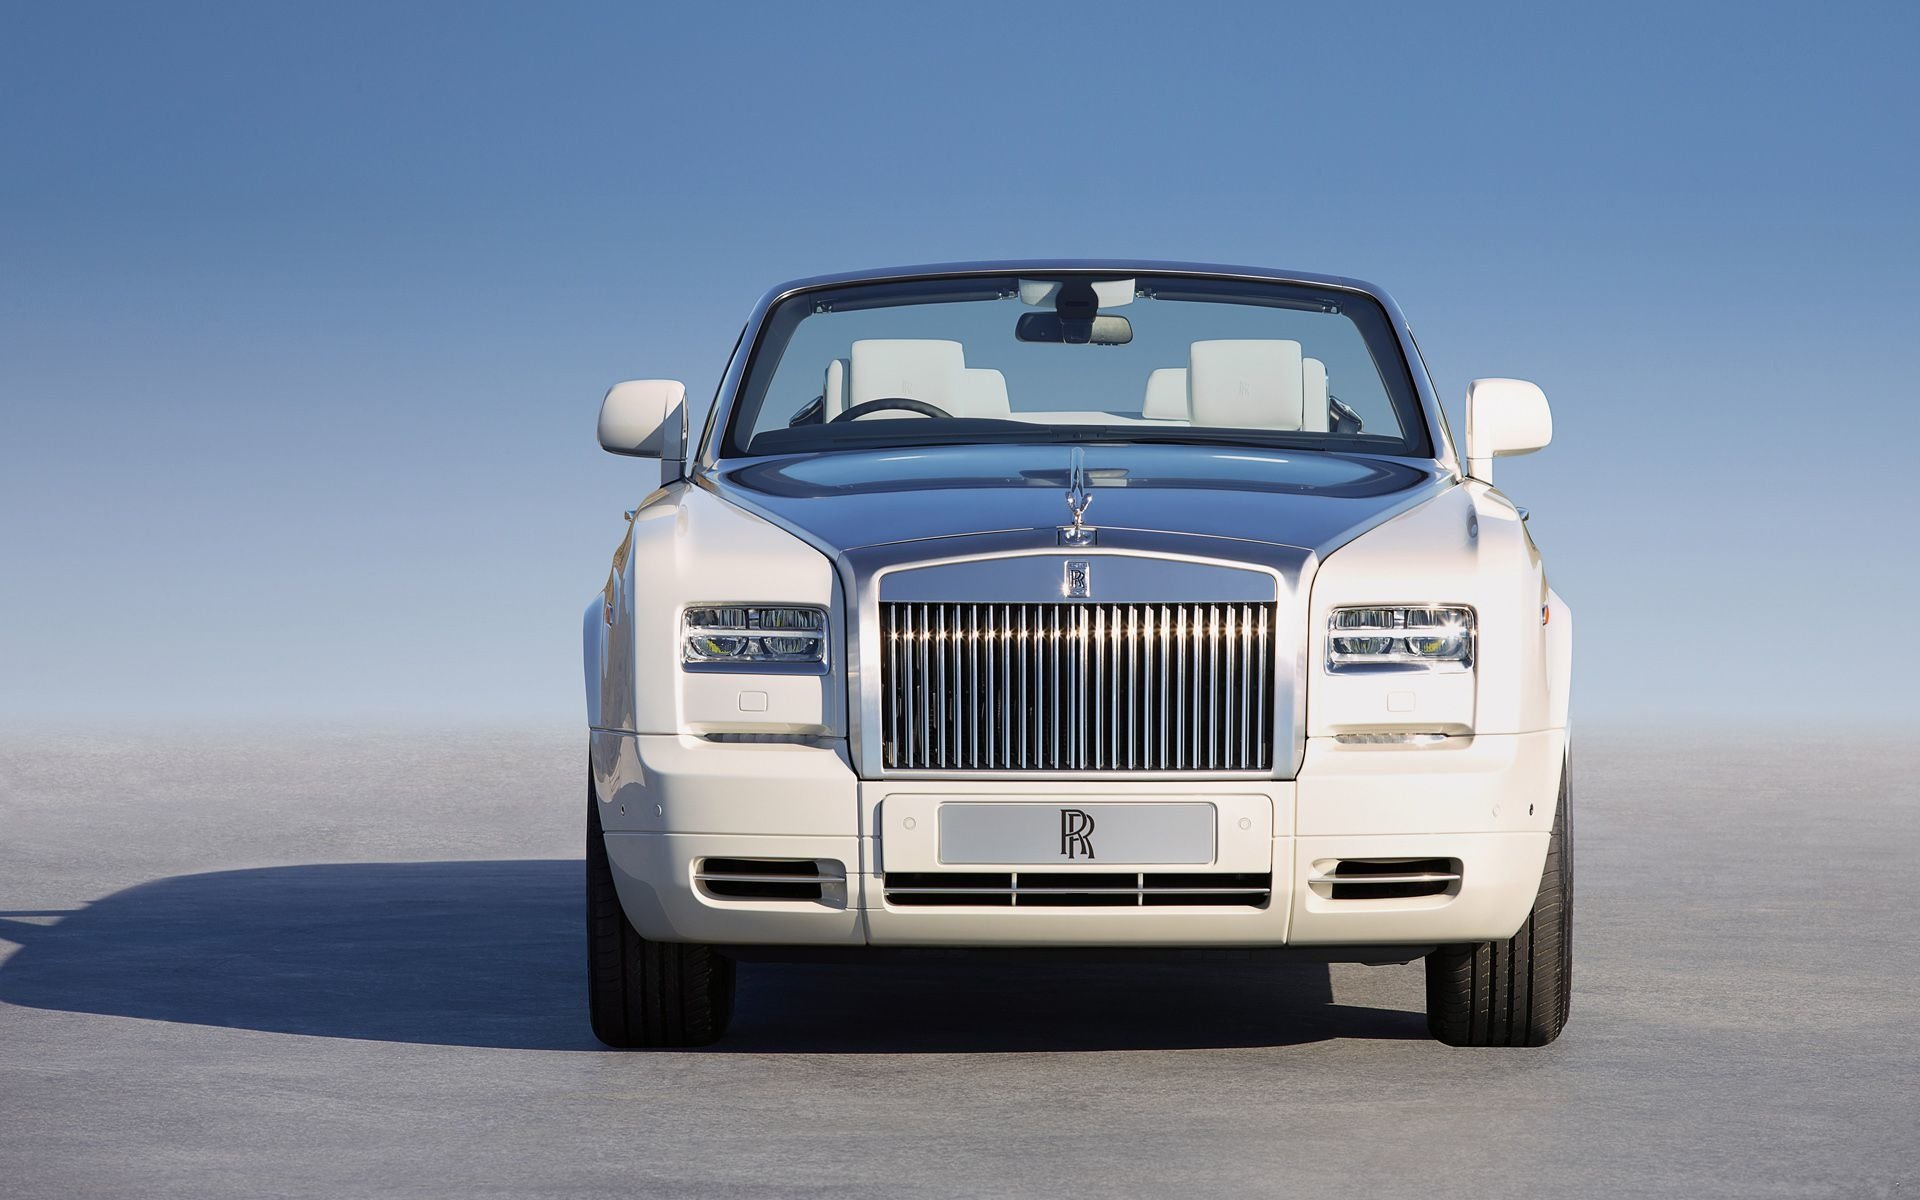 328 Rolls Royce Hd Wallpapers Background Images Wallpaper Abyss